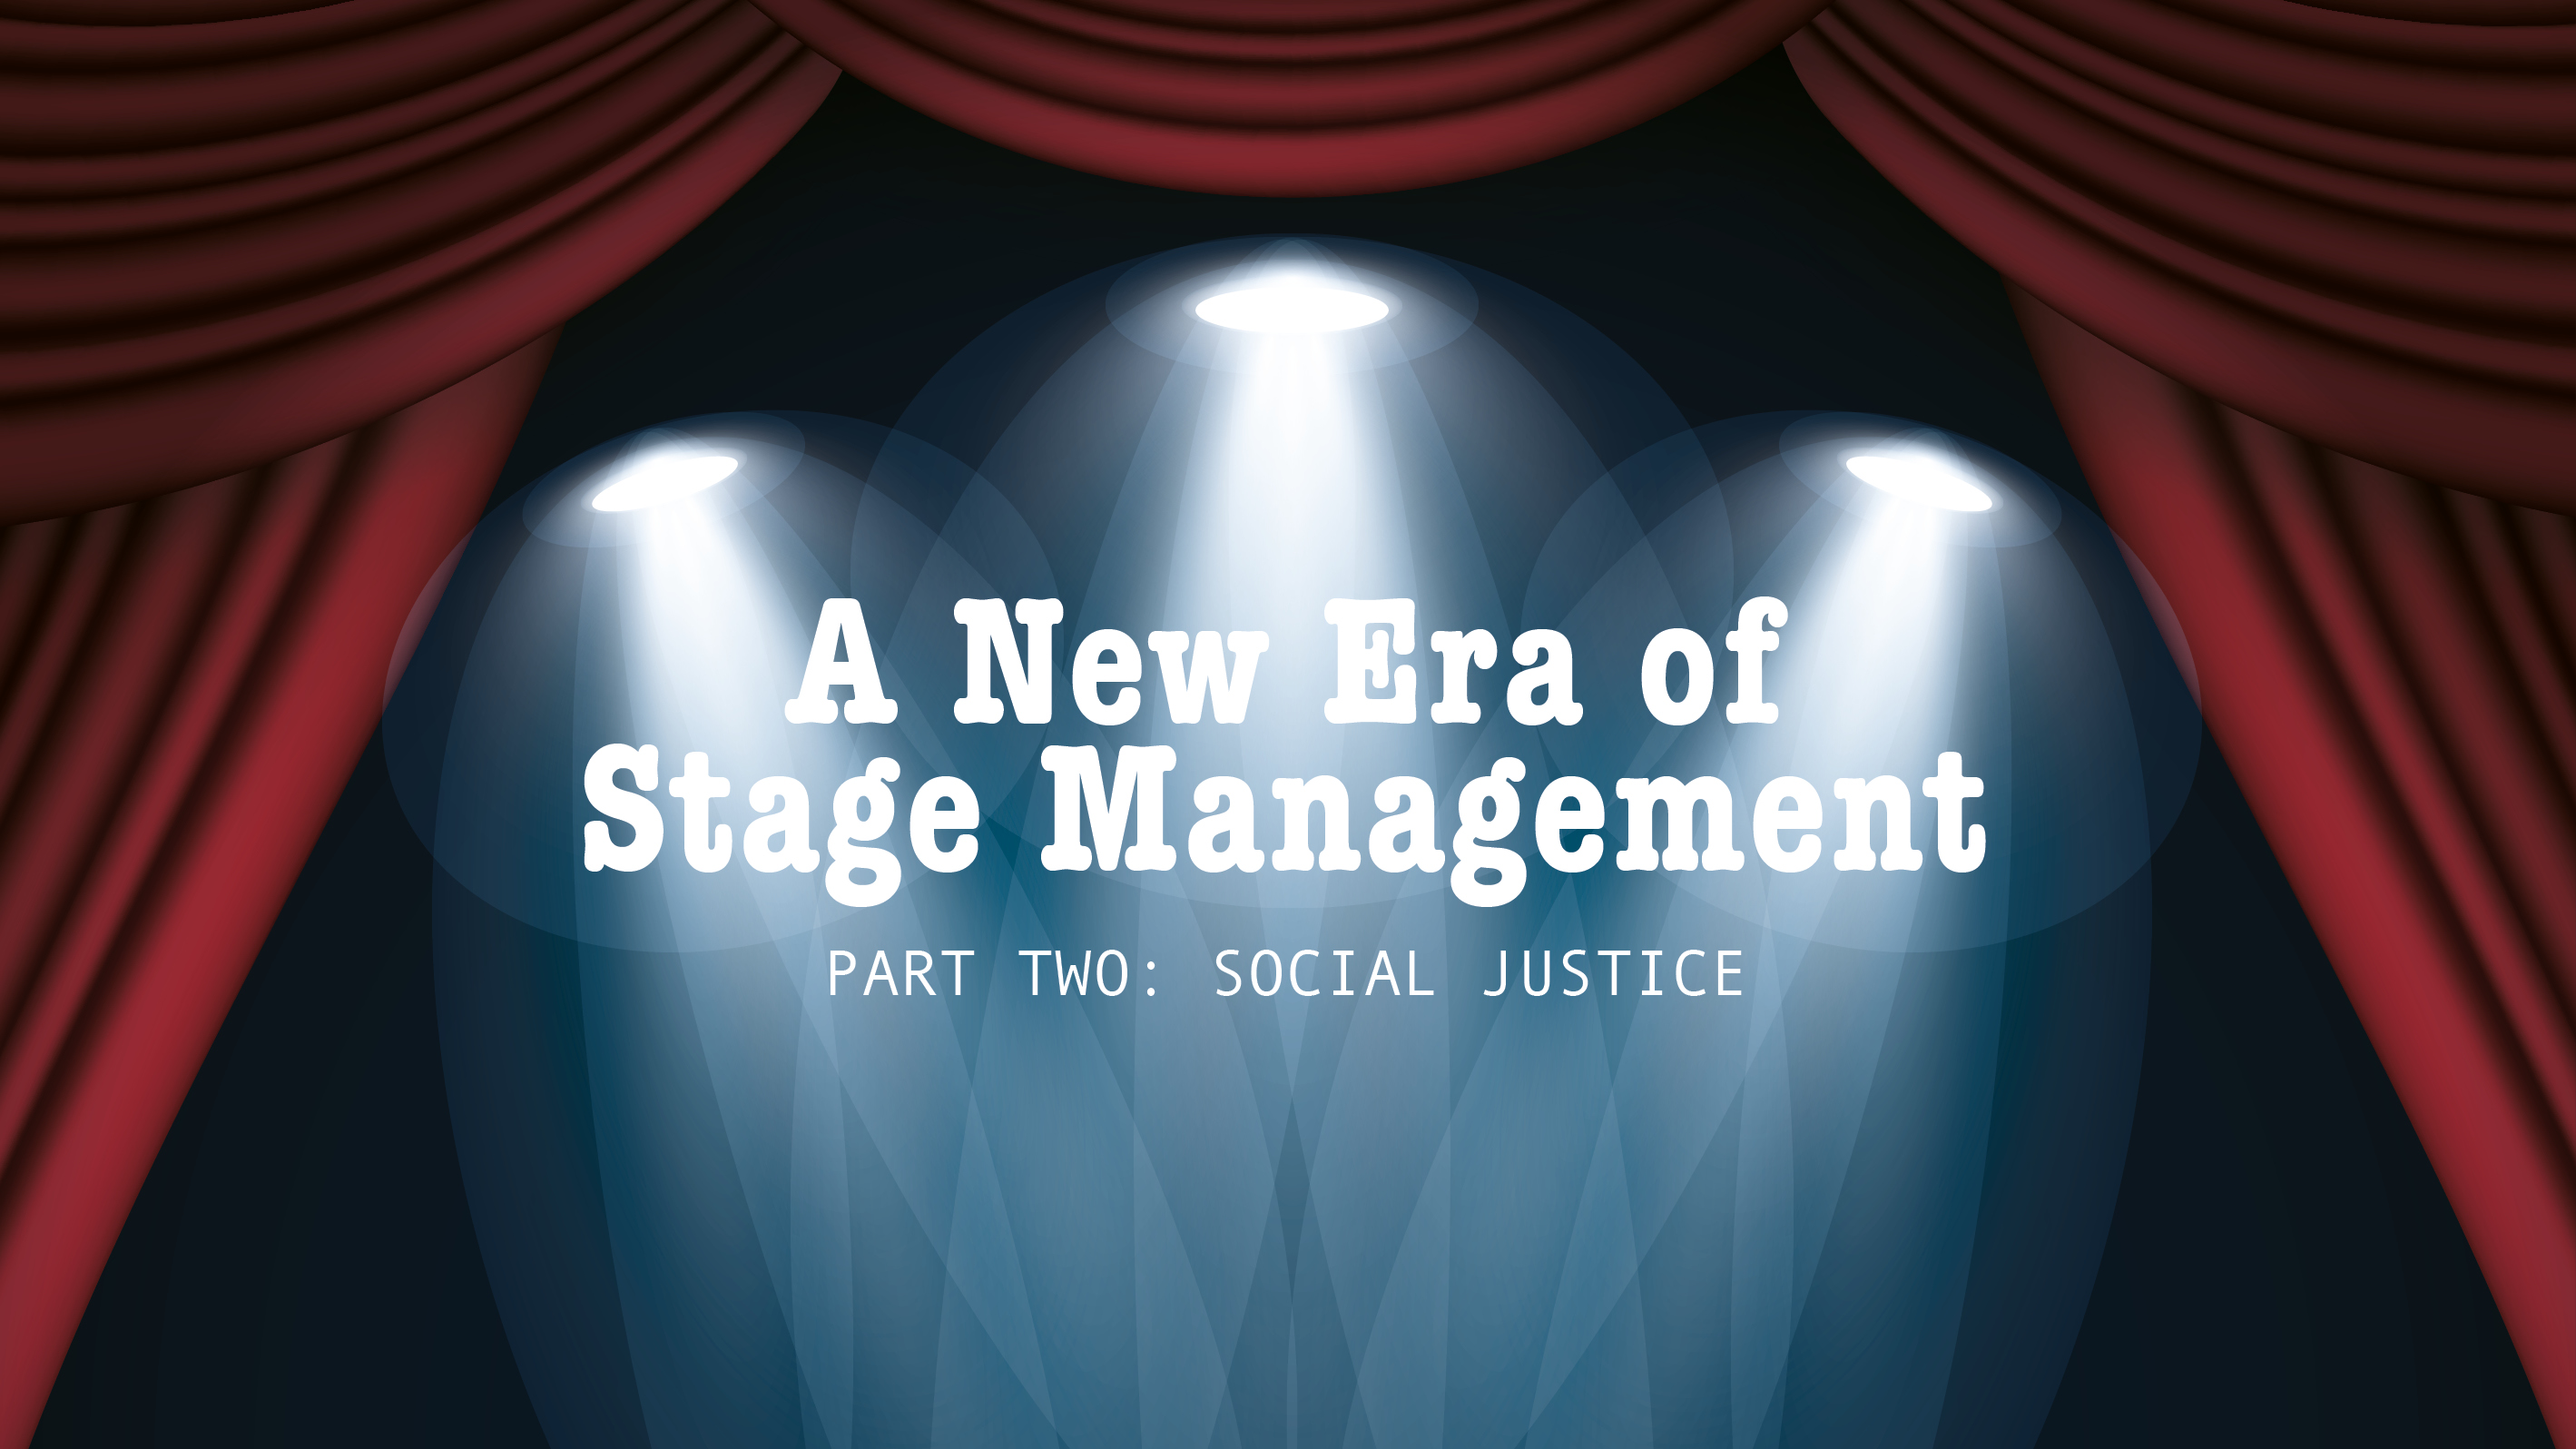 A new era of stage management2-1